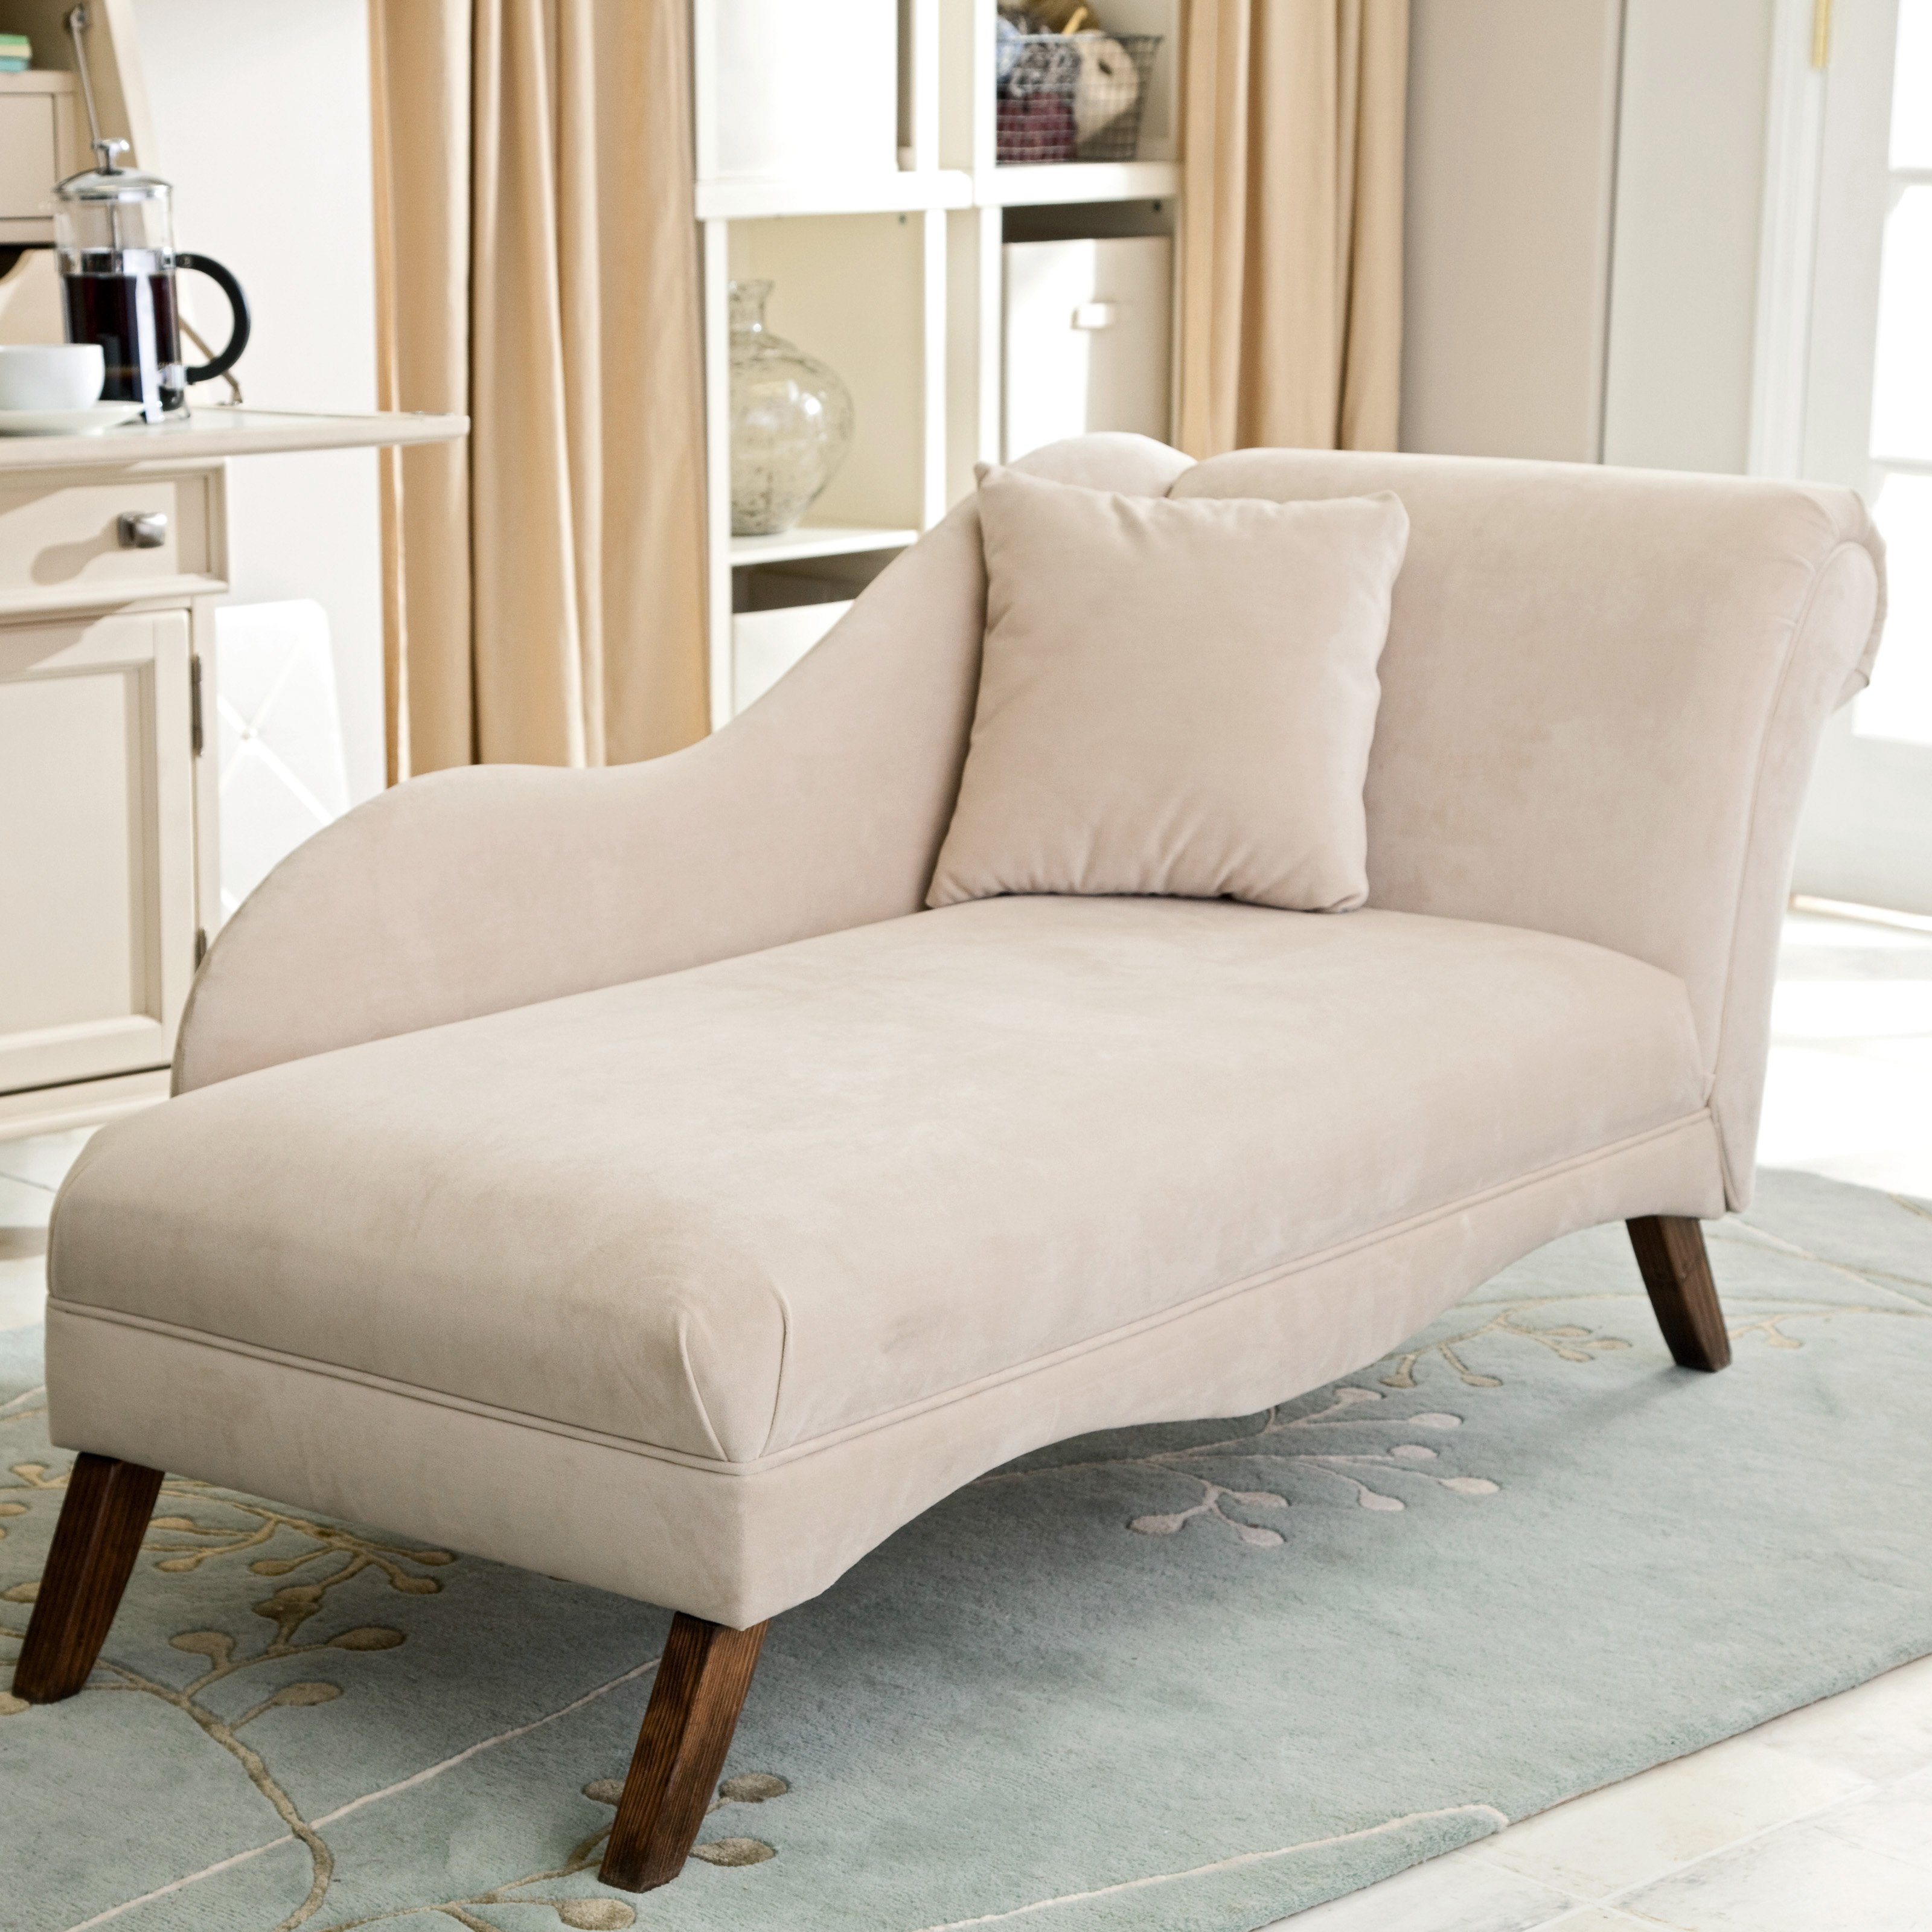 Current Chaise Lounge Chair – Symbol Of Style And Practicality Within Chaise Lounge Chairs Under $ (View 14 of 15)